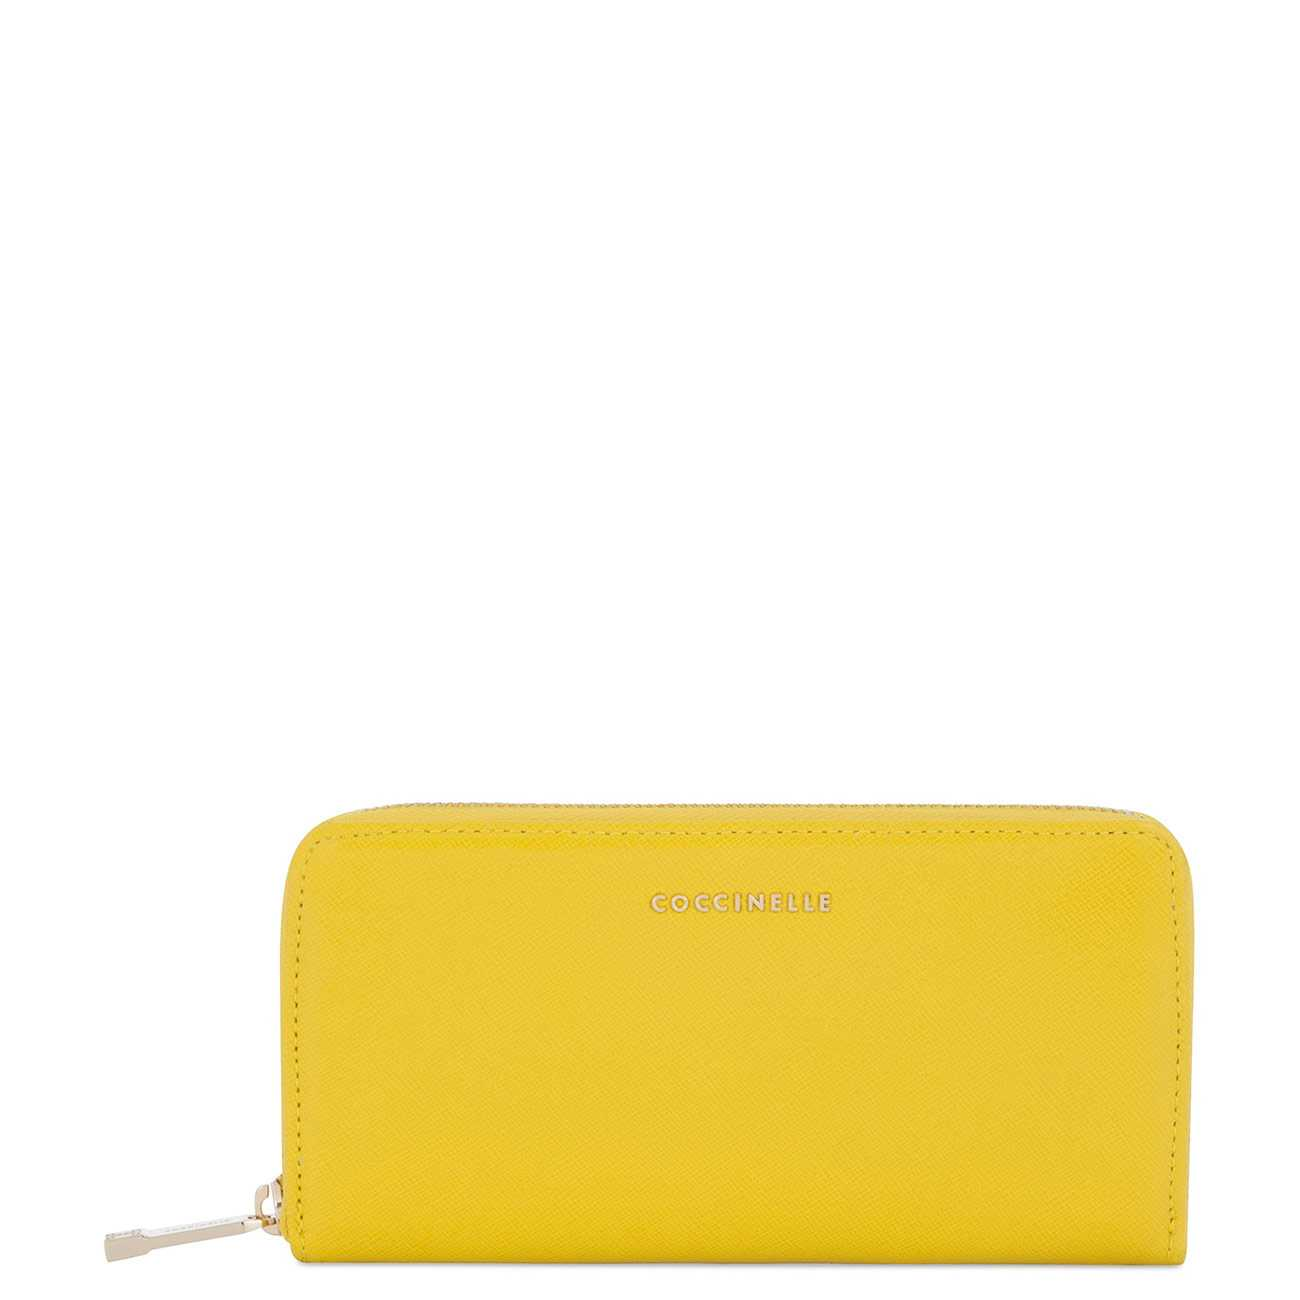 YELLOW LEATHER MATERIAL